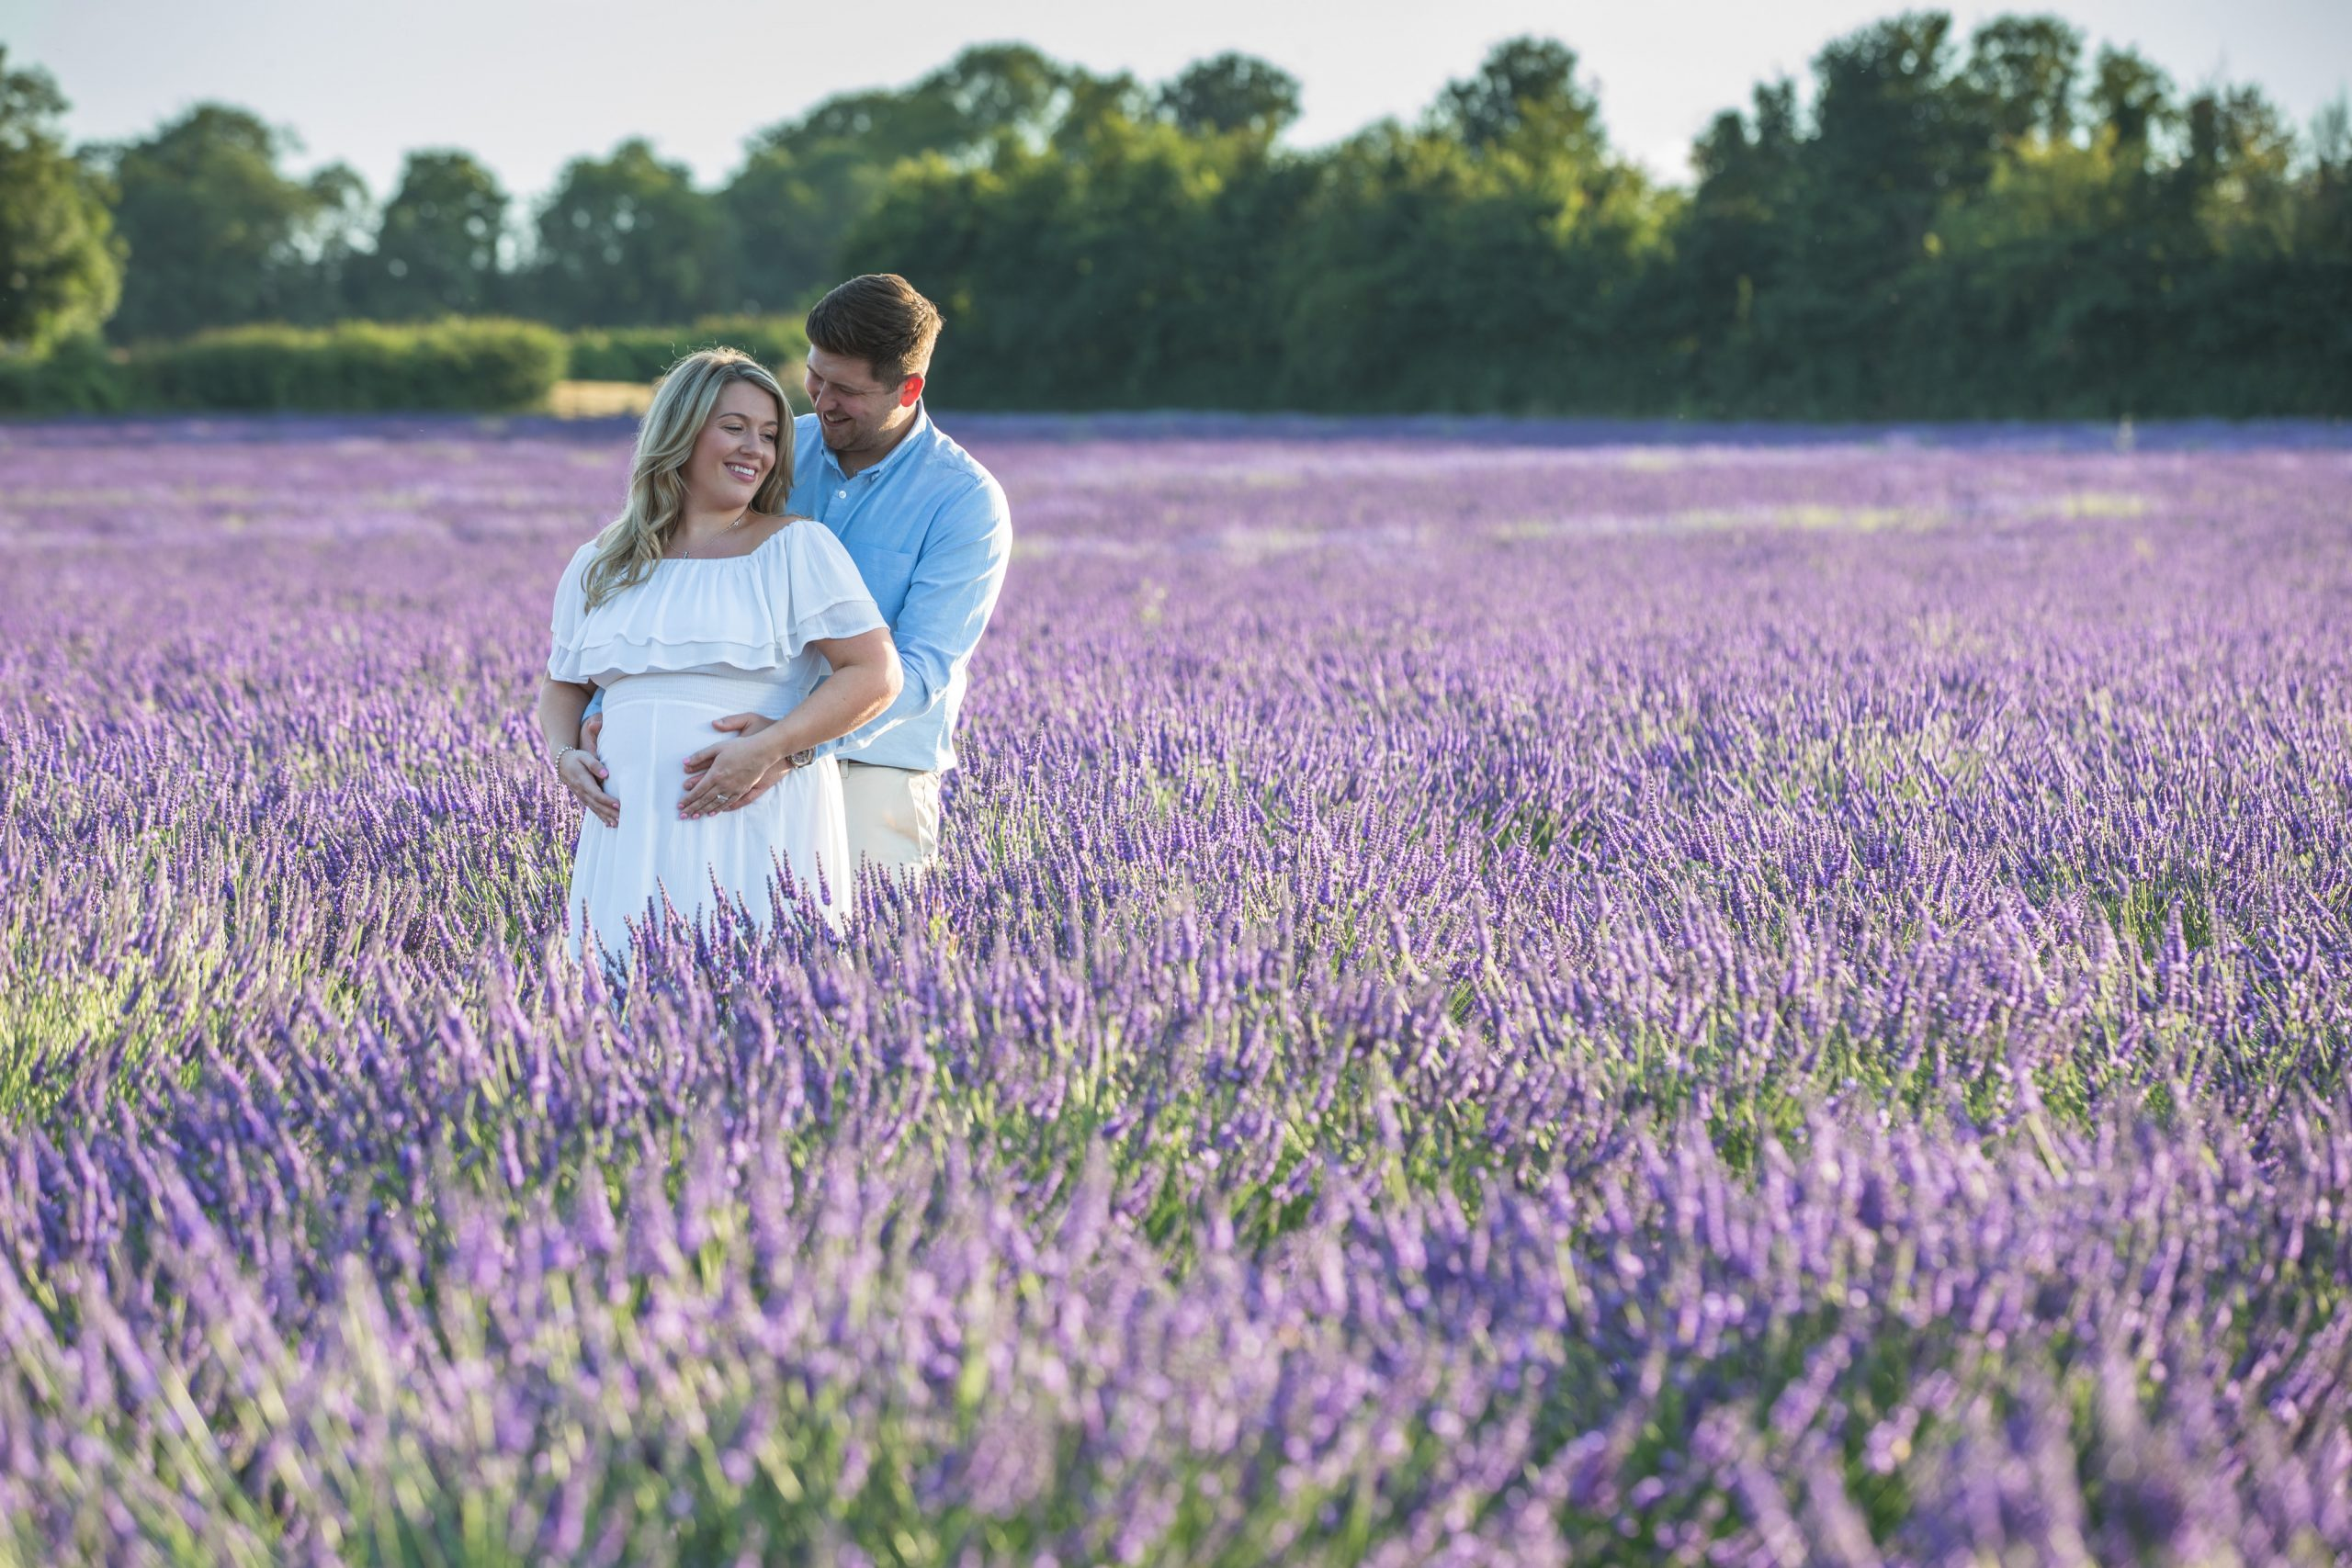 Kent maternity photography in a lavender field